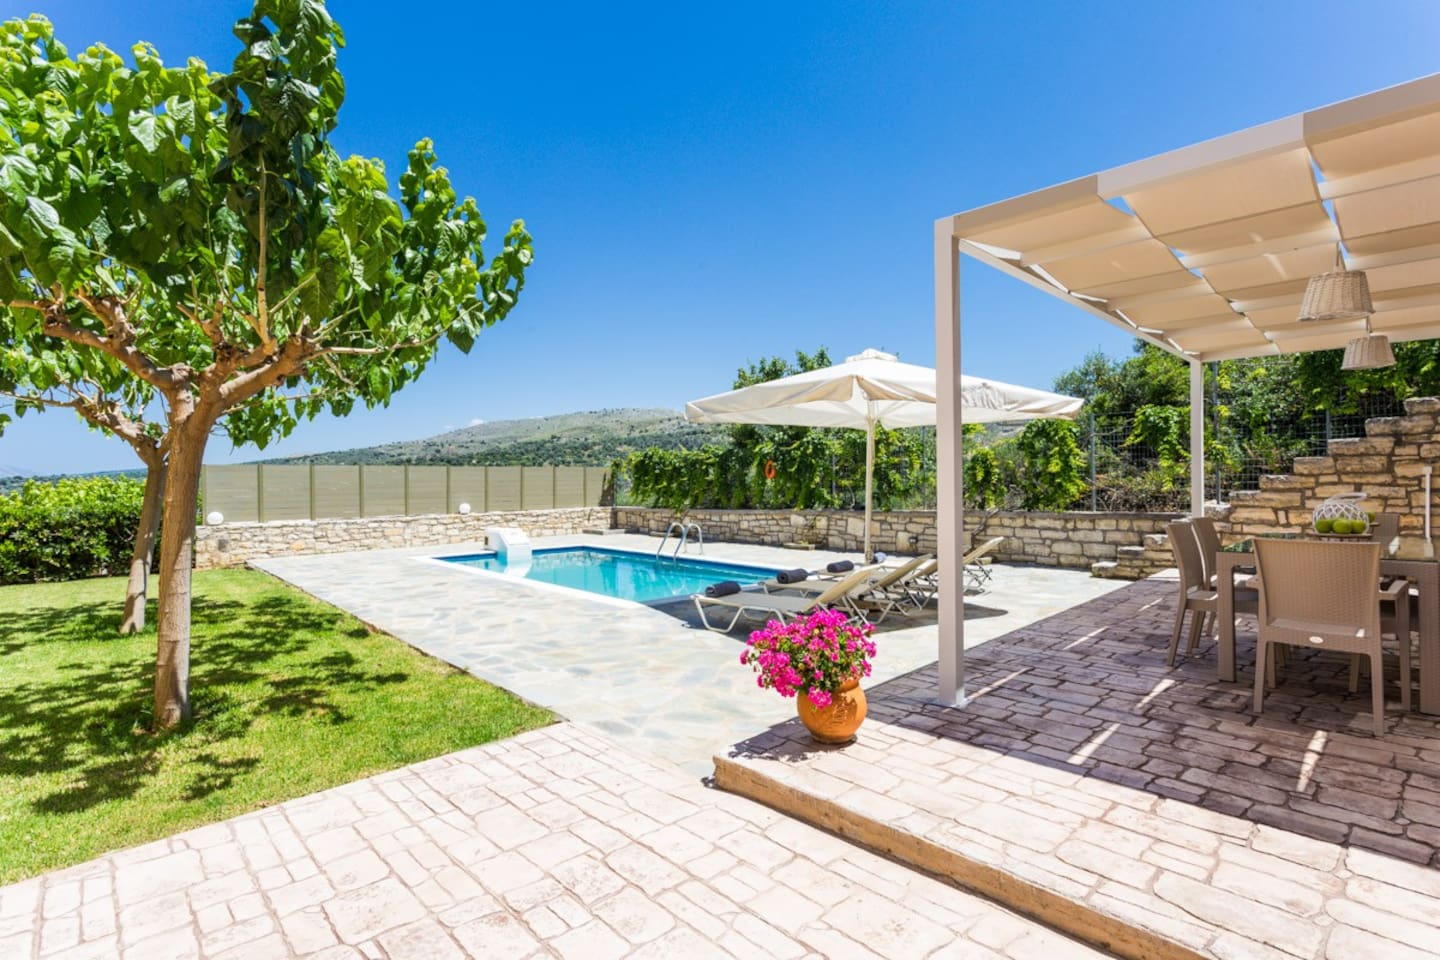 Villa Ivi offers ample outdoor space! Try al fresco dining, sunbathe and make the most of your holiday!